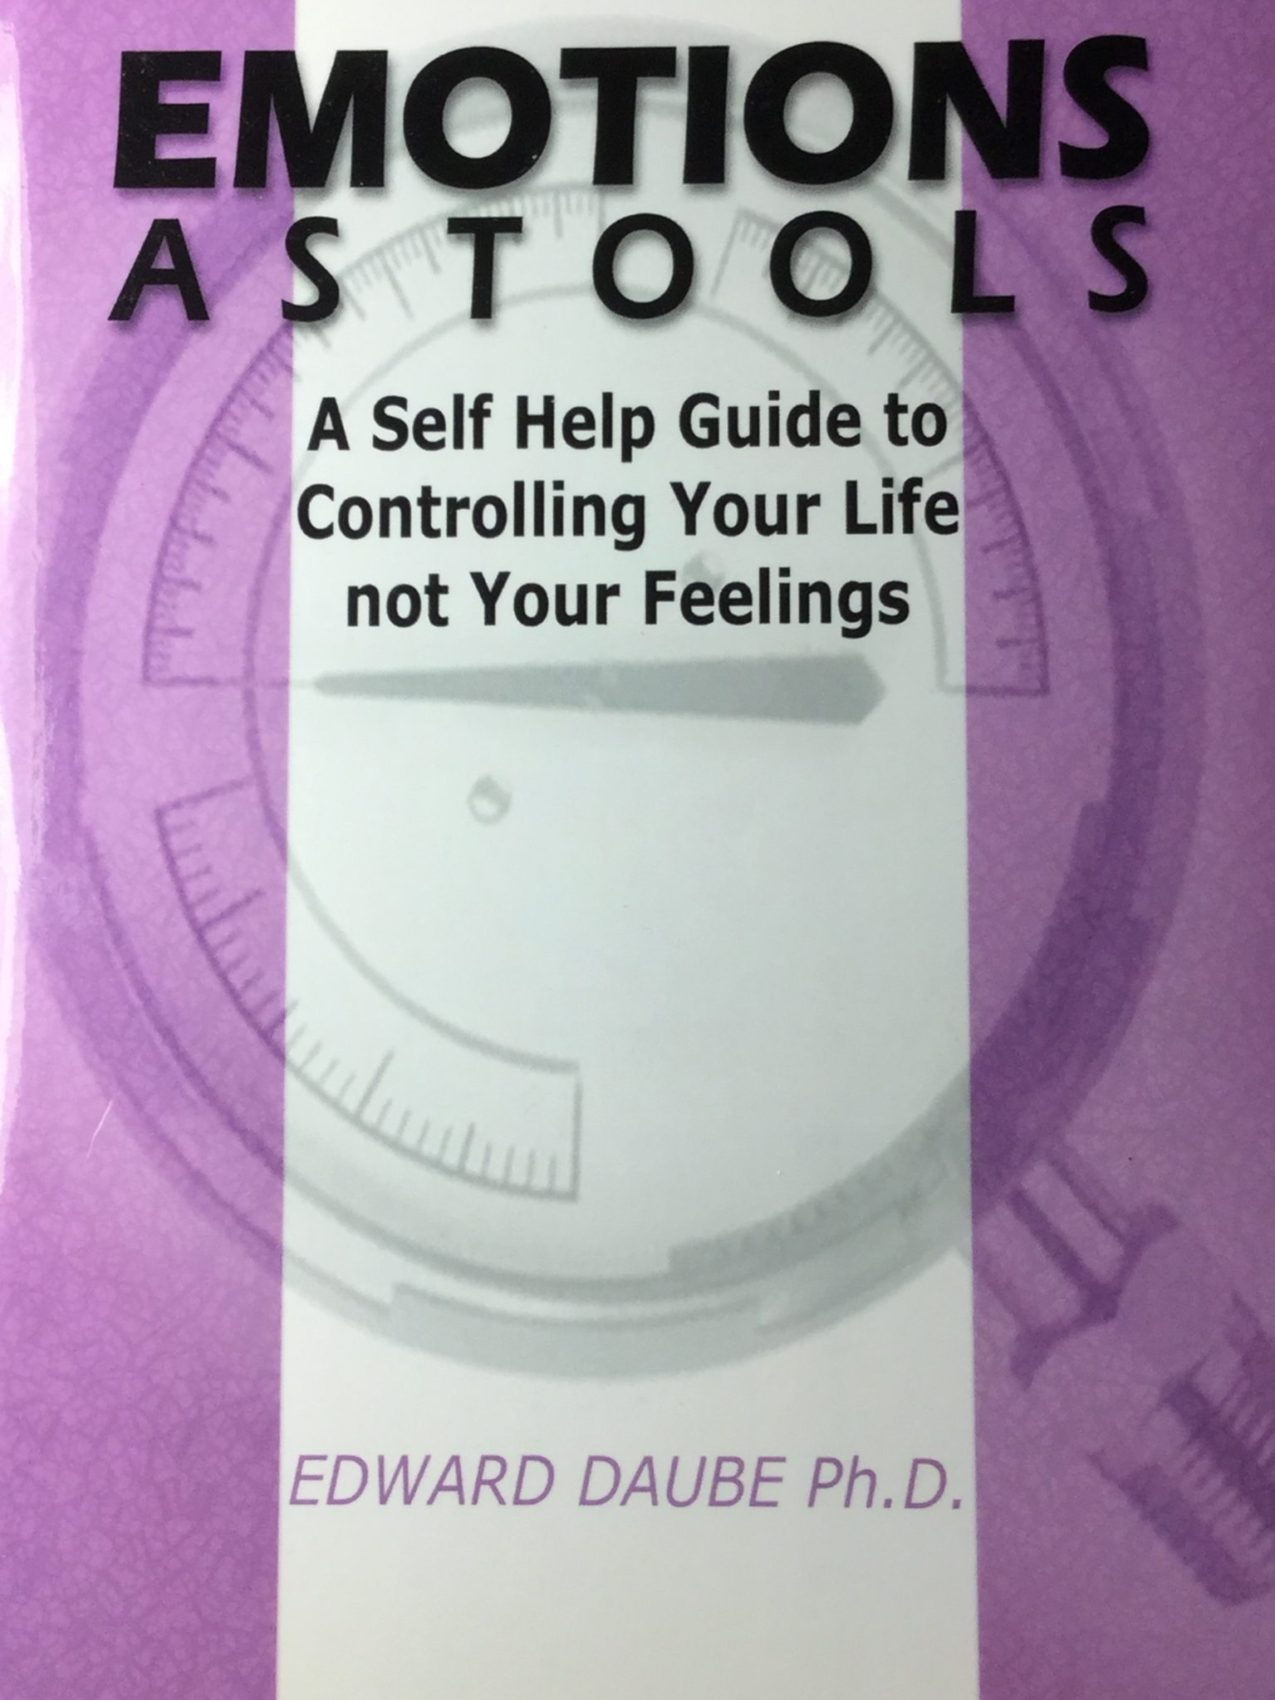 Book cover for Emotions as tools